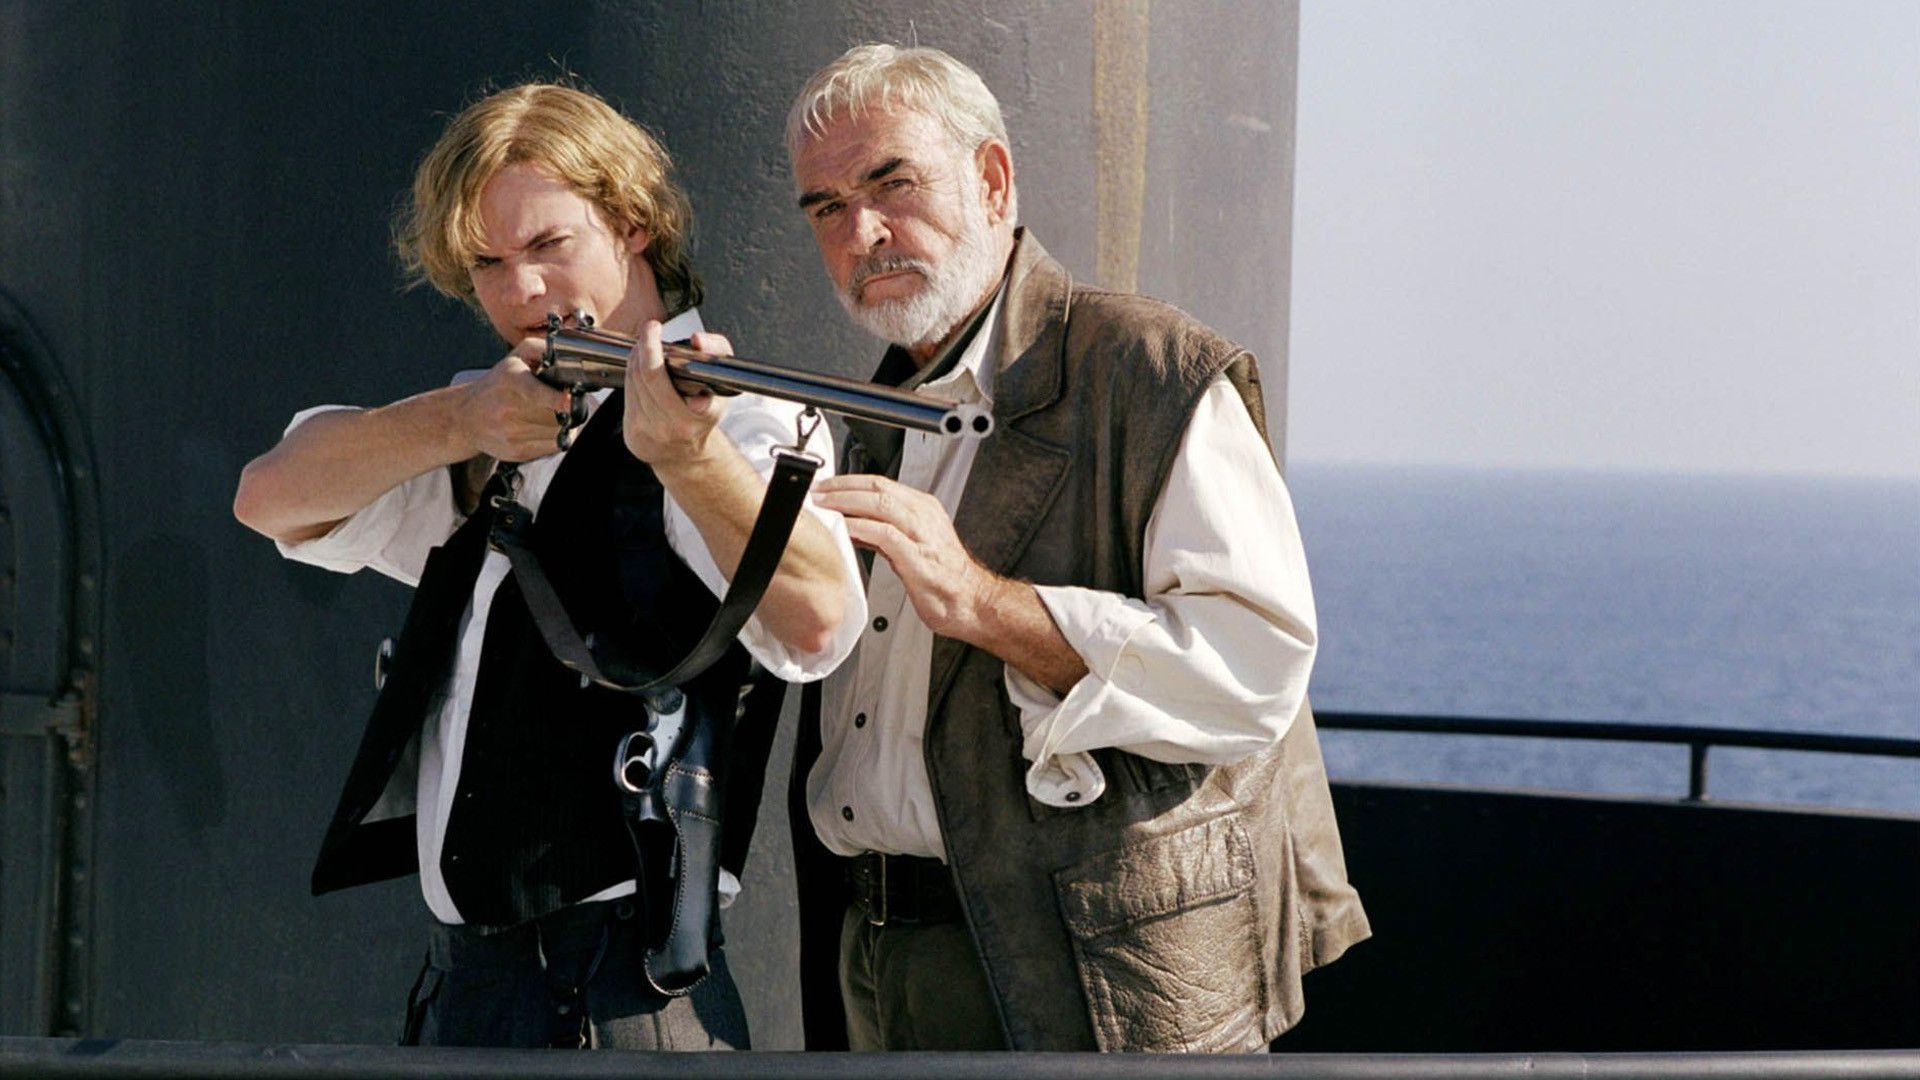 Allan Quatermain (Seam Connery) teaches Tom Sawyer (Sane West) to shoot in The League of Extraordinary Gentlemen (2003)